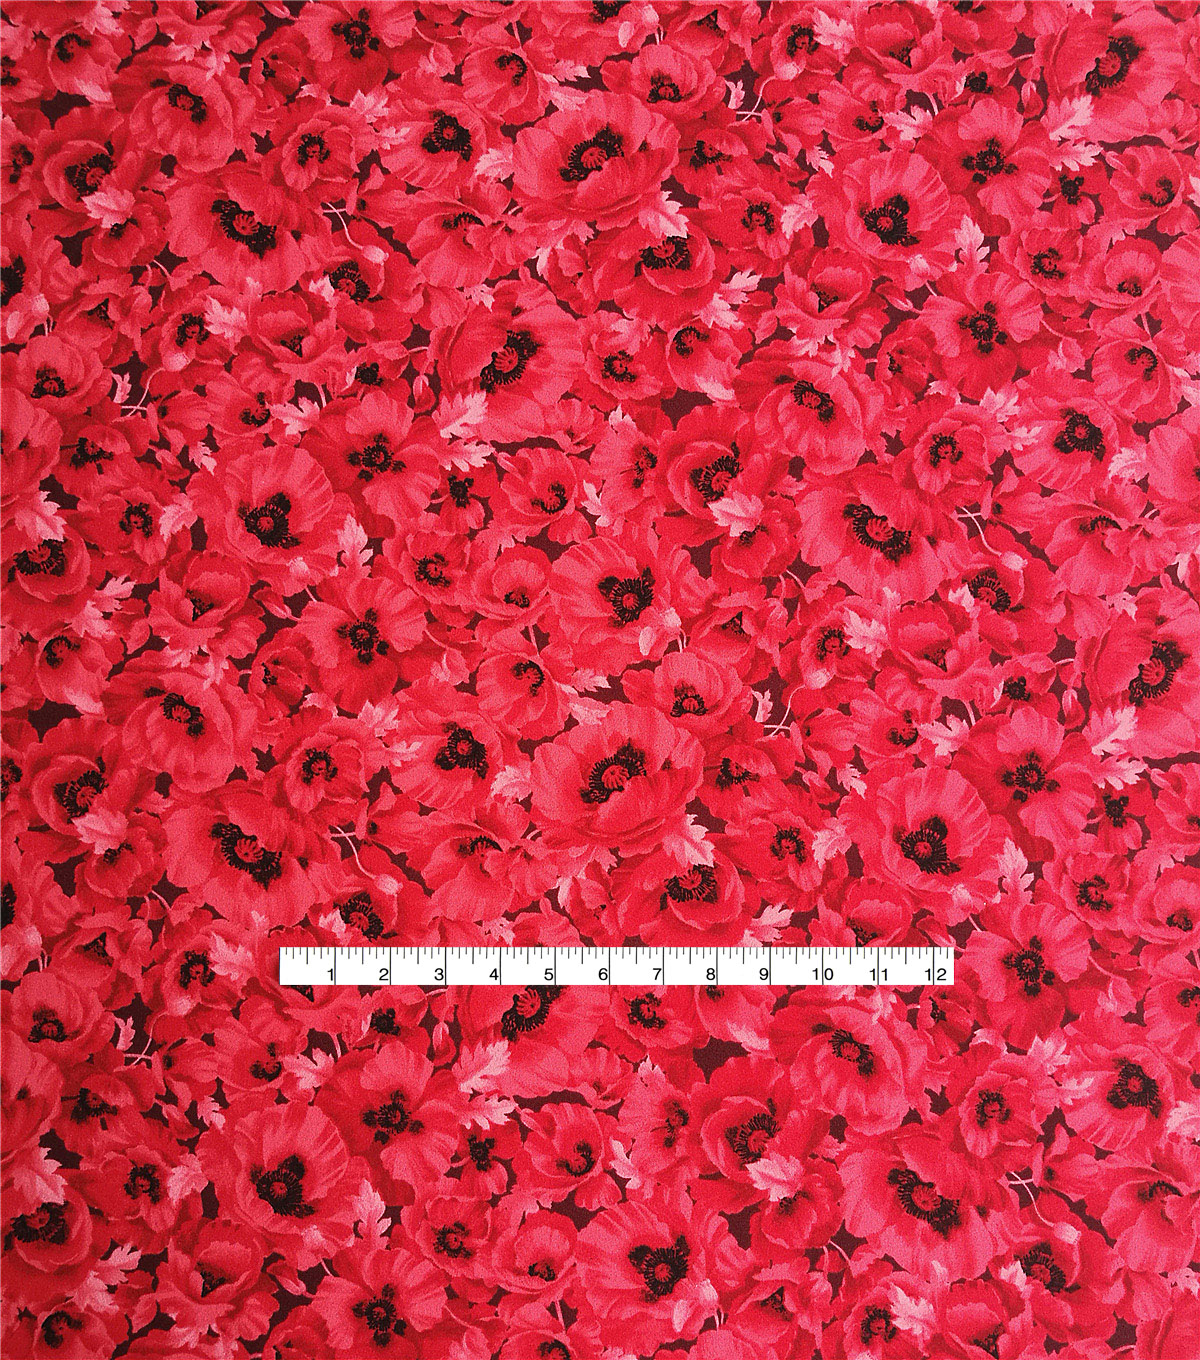 Stretch Crepe Knit Fabric 58\u0022-Black & Red Poppy